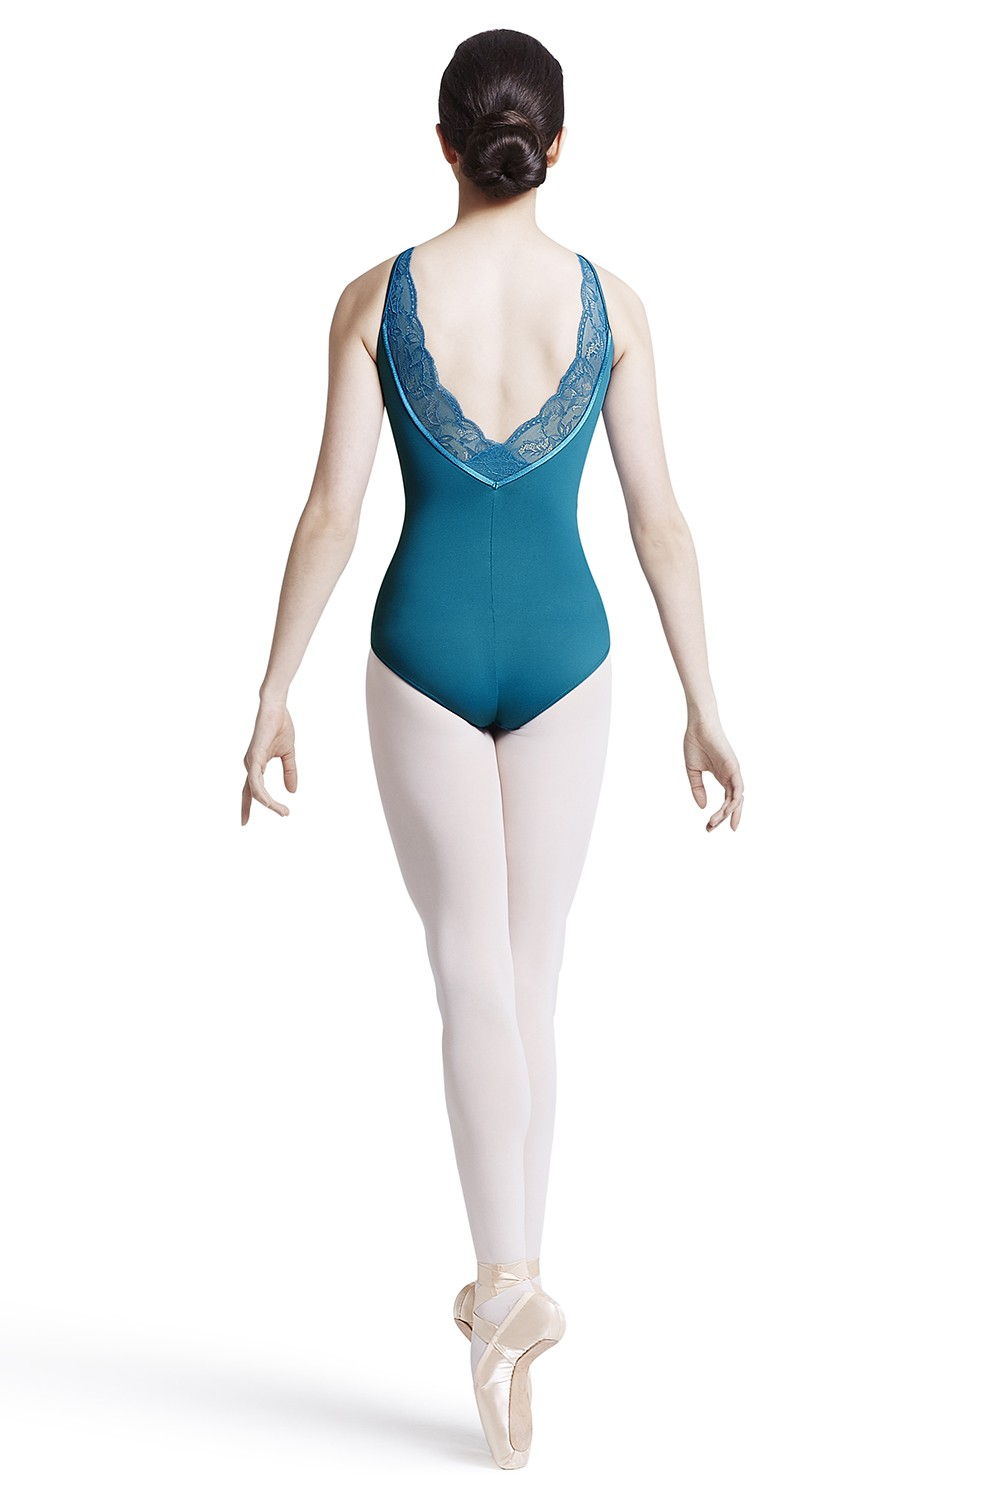 Body A Spalline Sottili Con Scollo Profondo Sul Retro Women's Dance Leotards